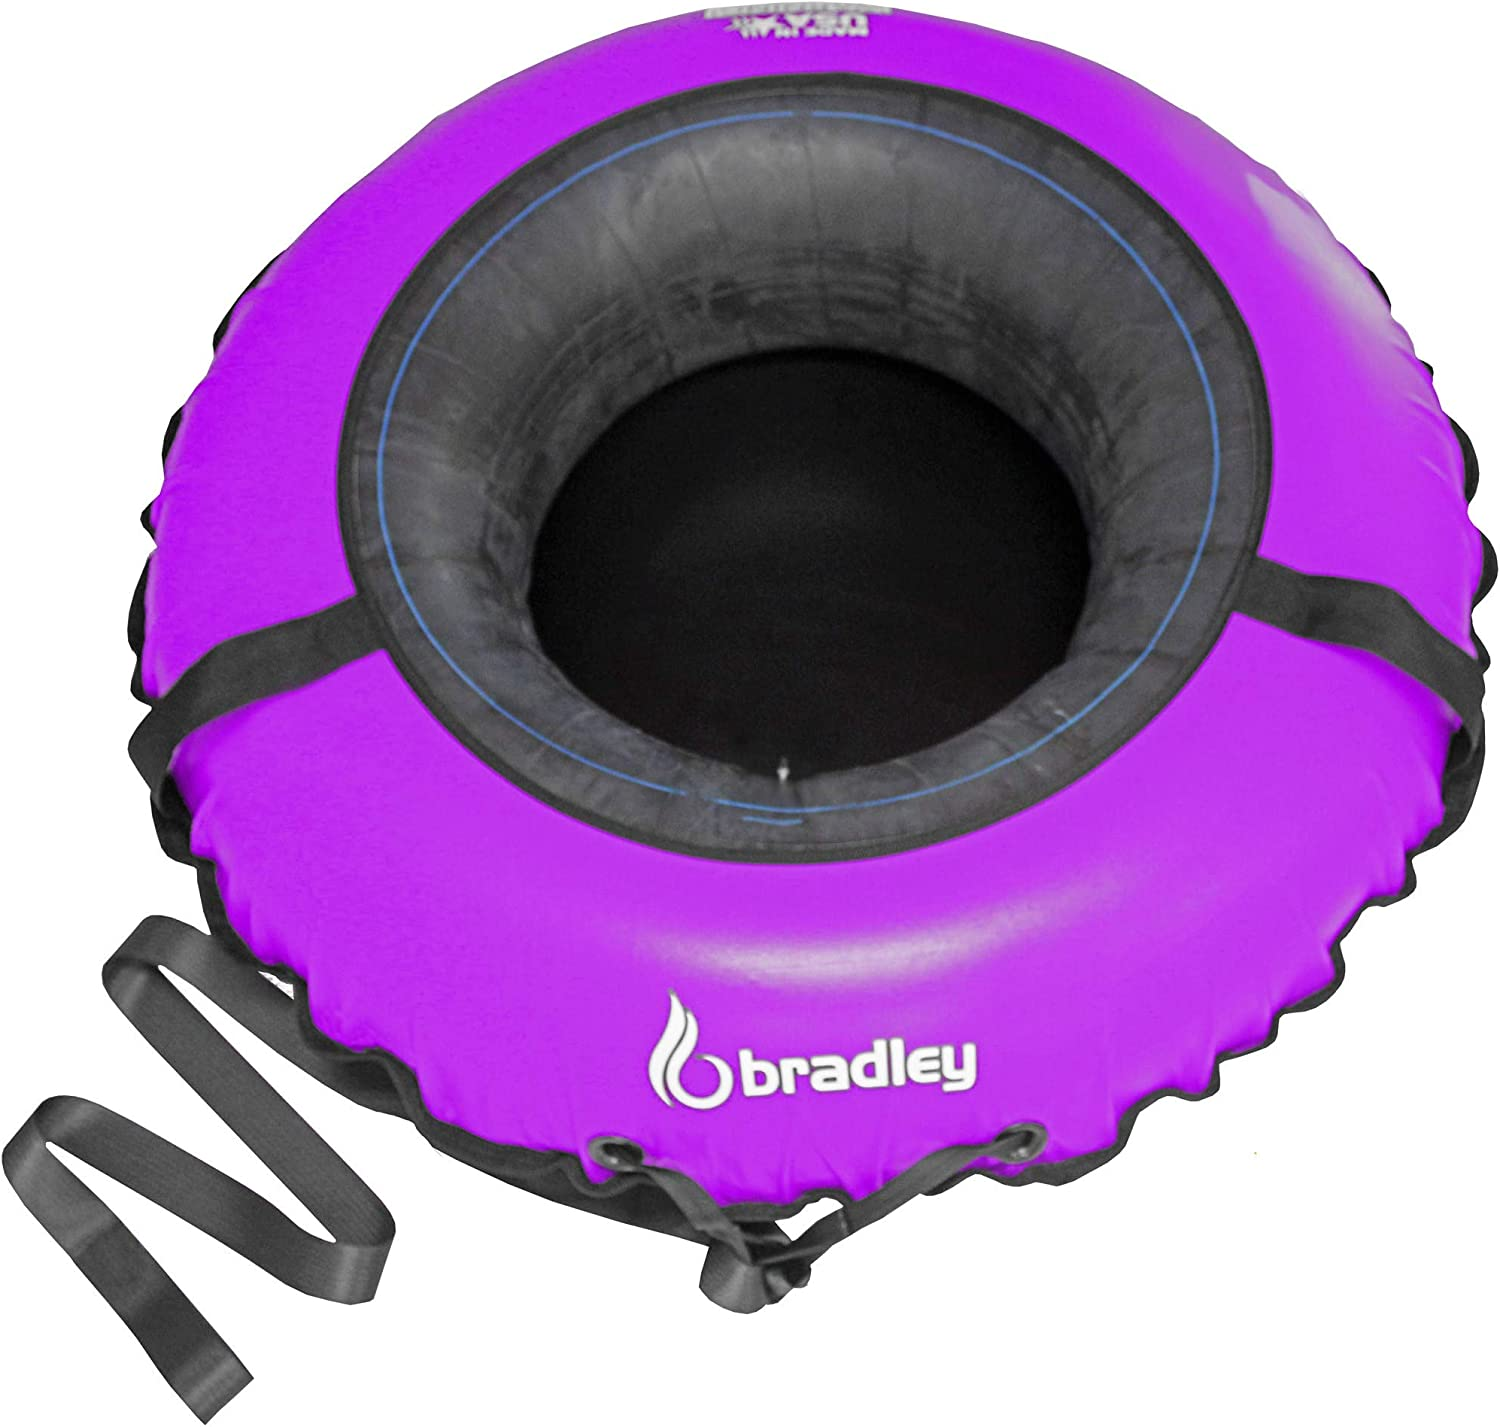 Year-end annual account Bradley Ultimate Towable Snow Clearance SALE! Limited time! Tube Inflatable Sledding Tu Sled